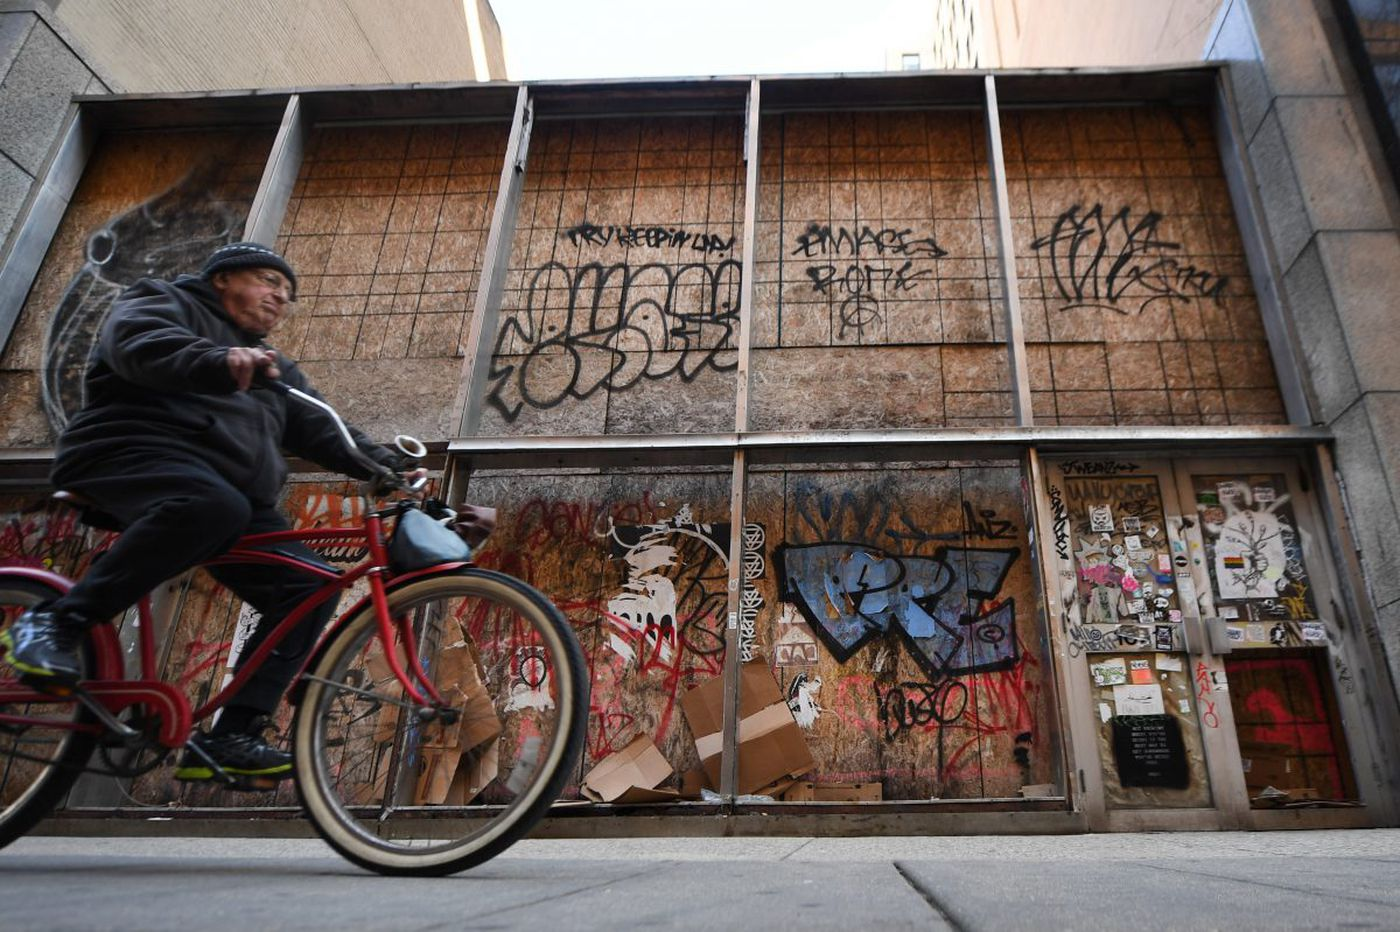 How did a modernist landmark end up covered in plywood and graffiti?